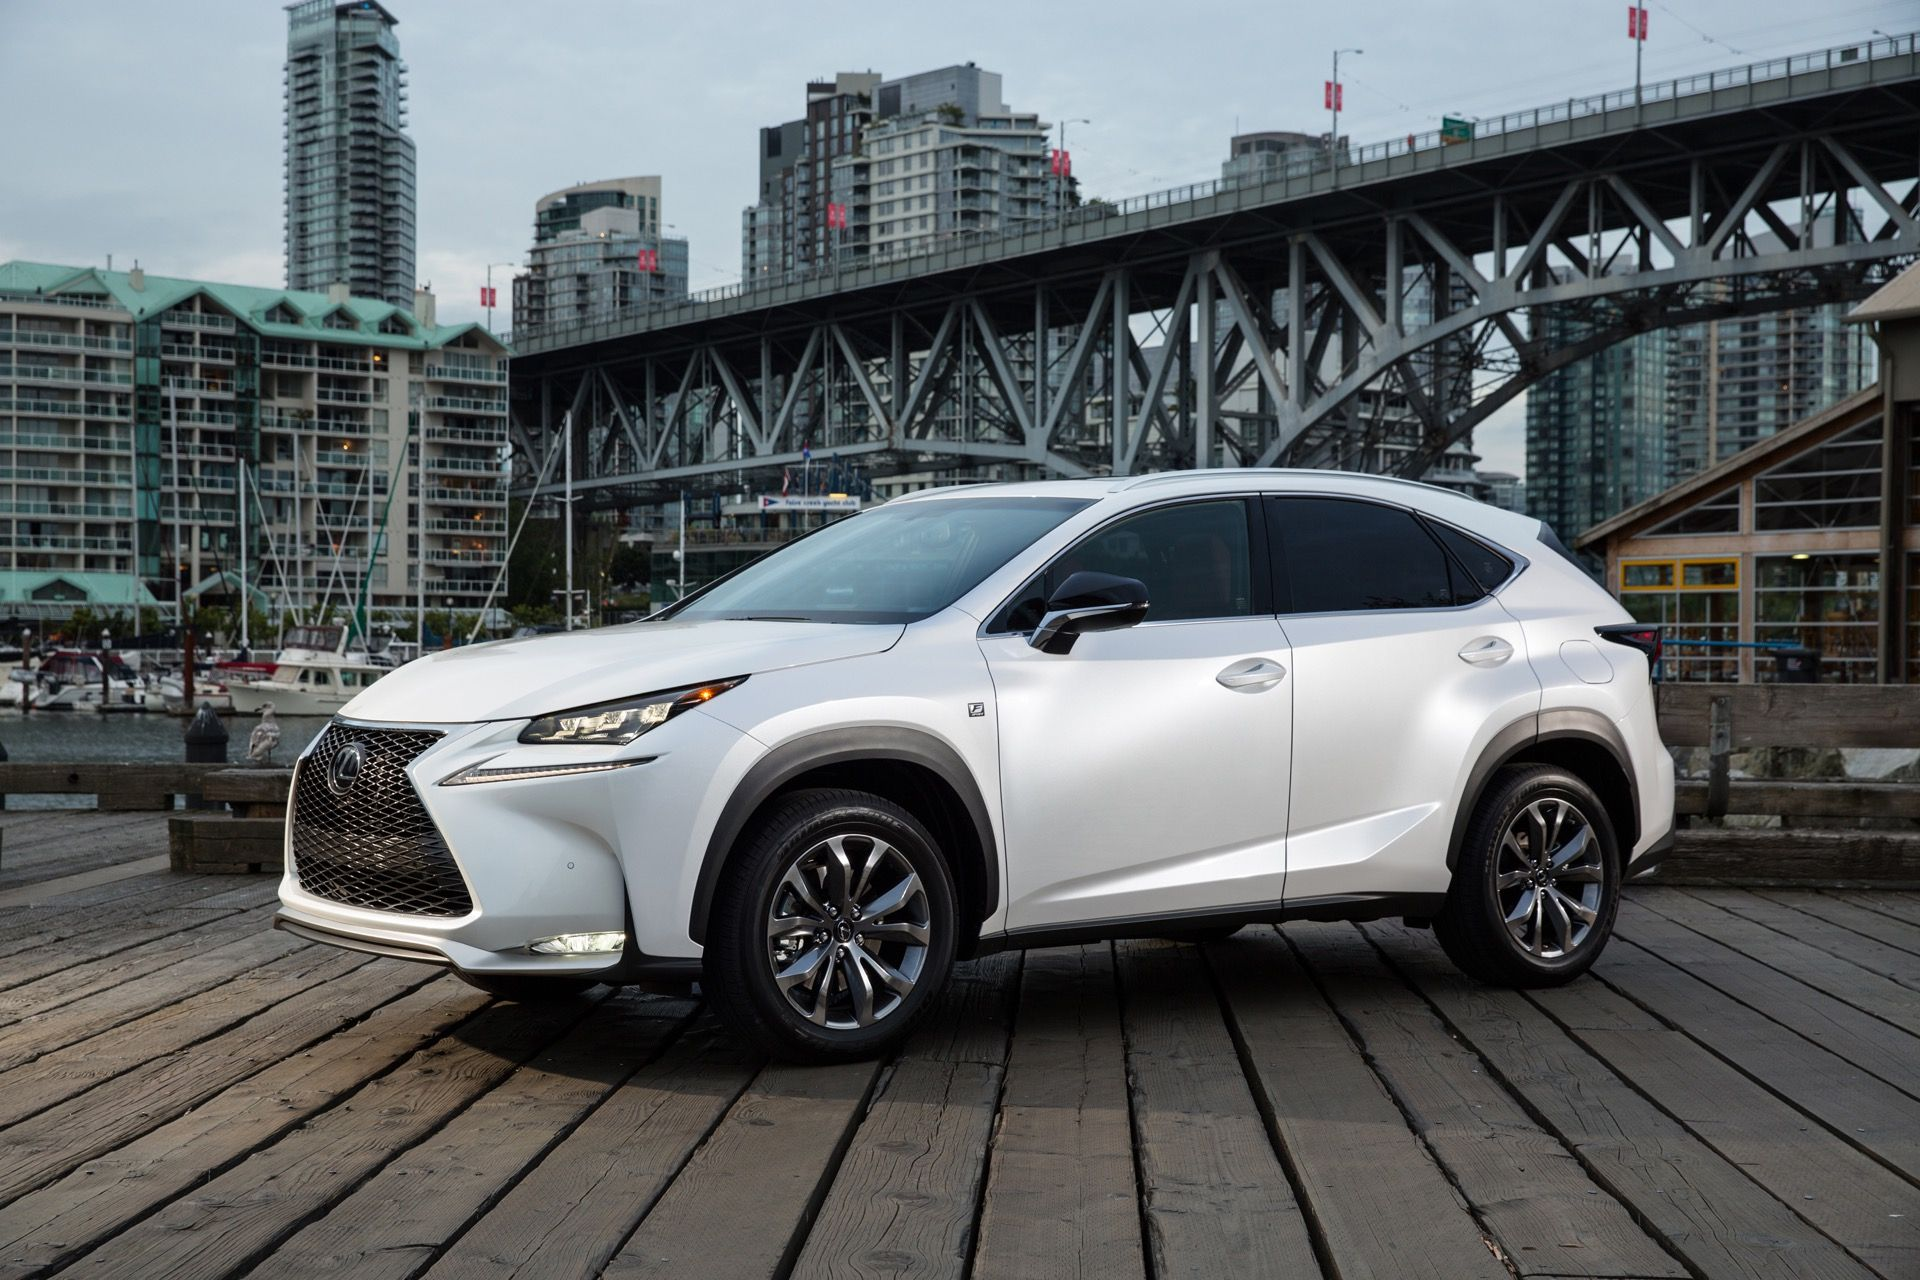 2017 lexus nx price and release date lexus nx 2017 is one of the newest models in the current lineup of this japanese manufacturer this model was